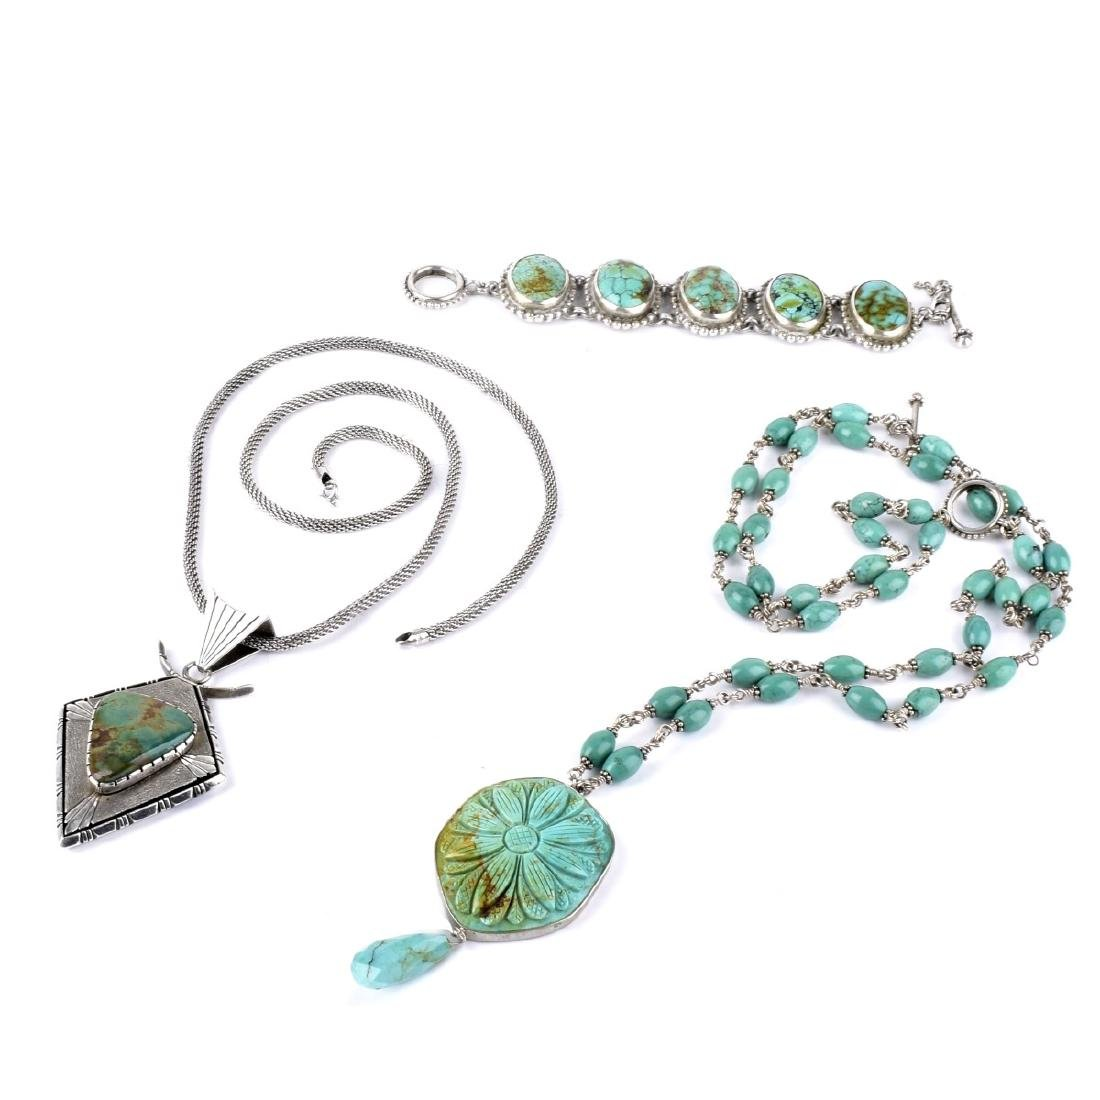 Turquoise and Sterling Jewelry Group